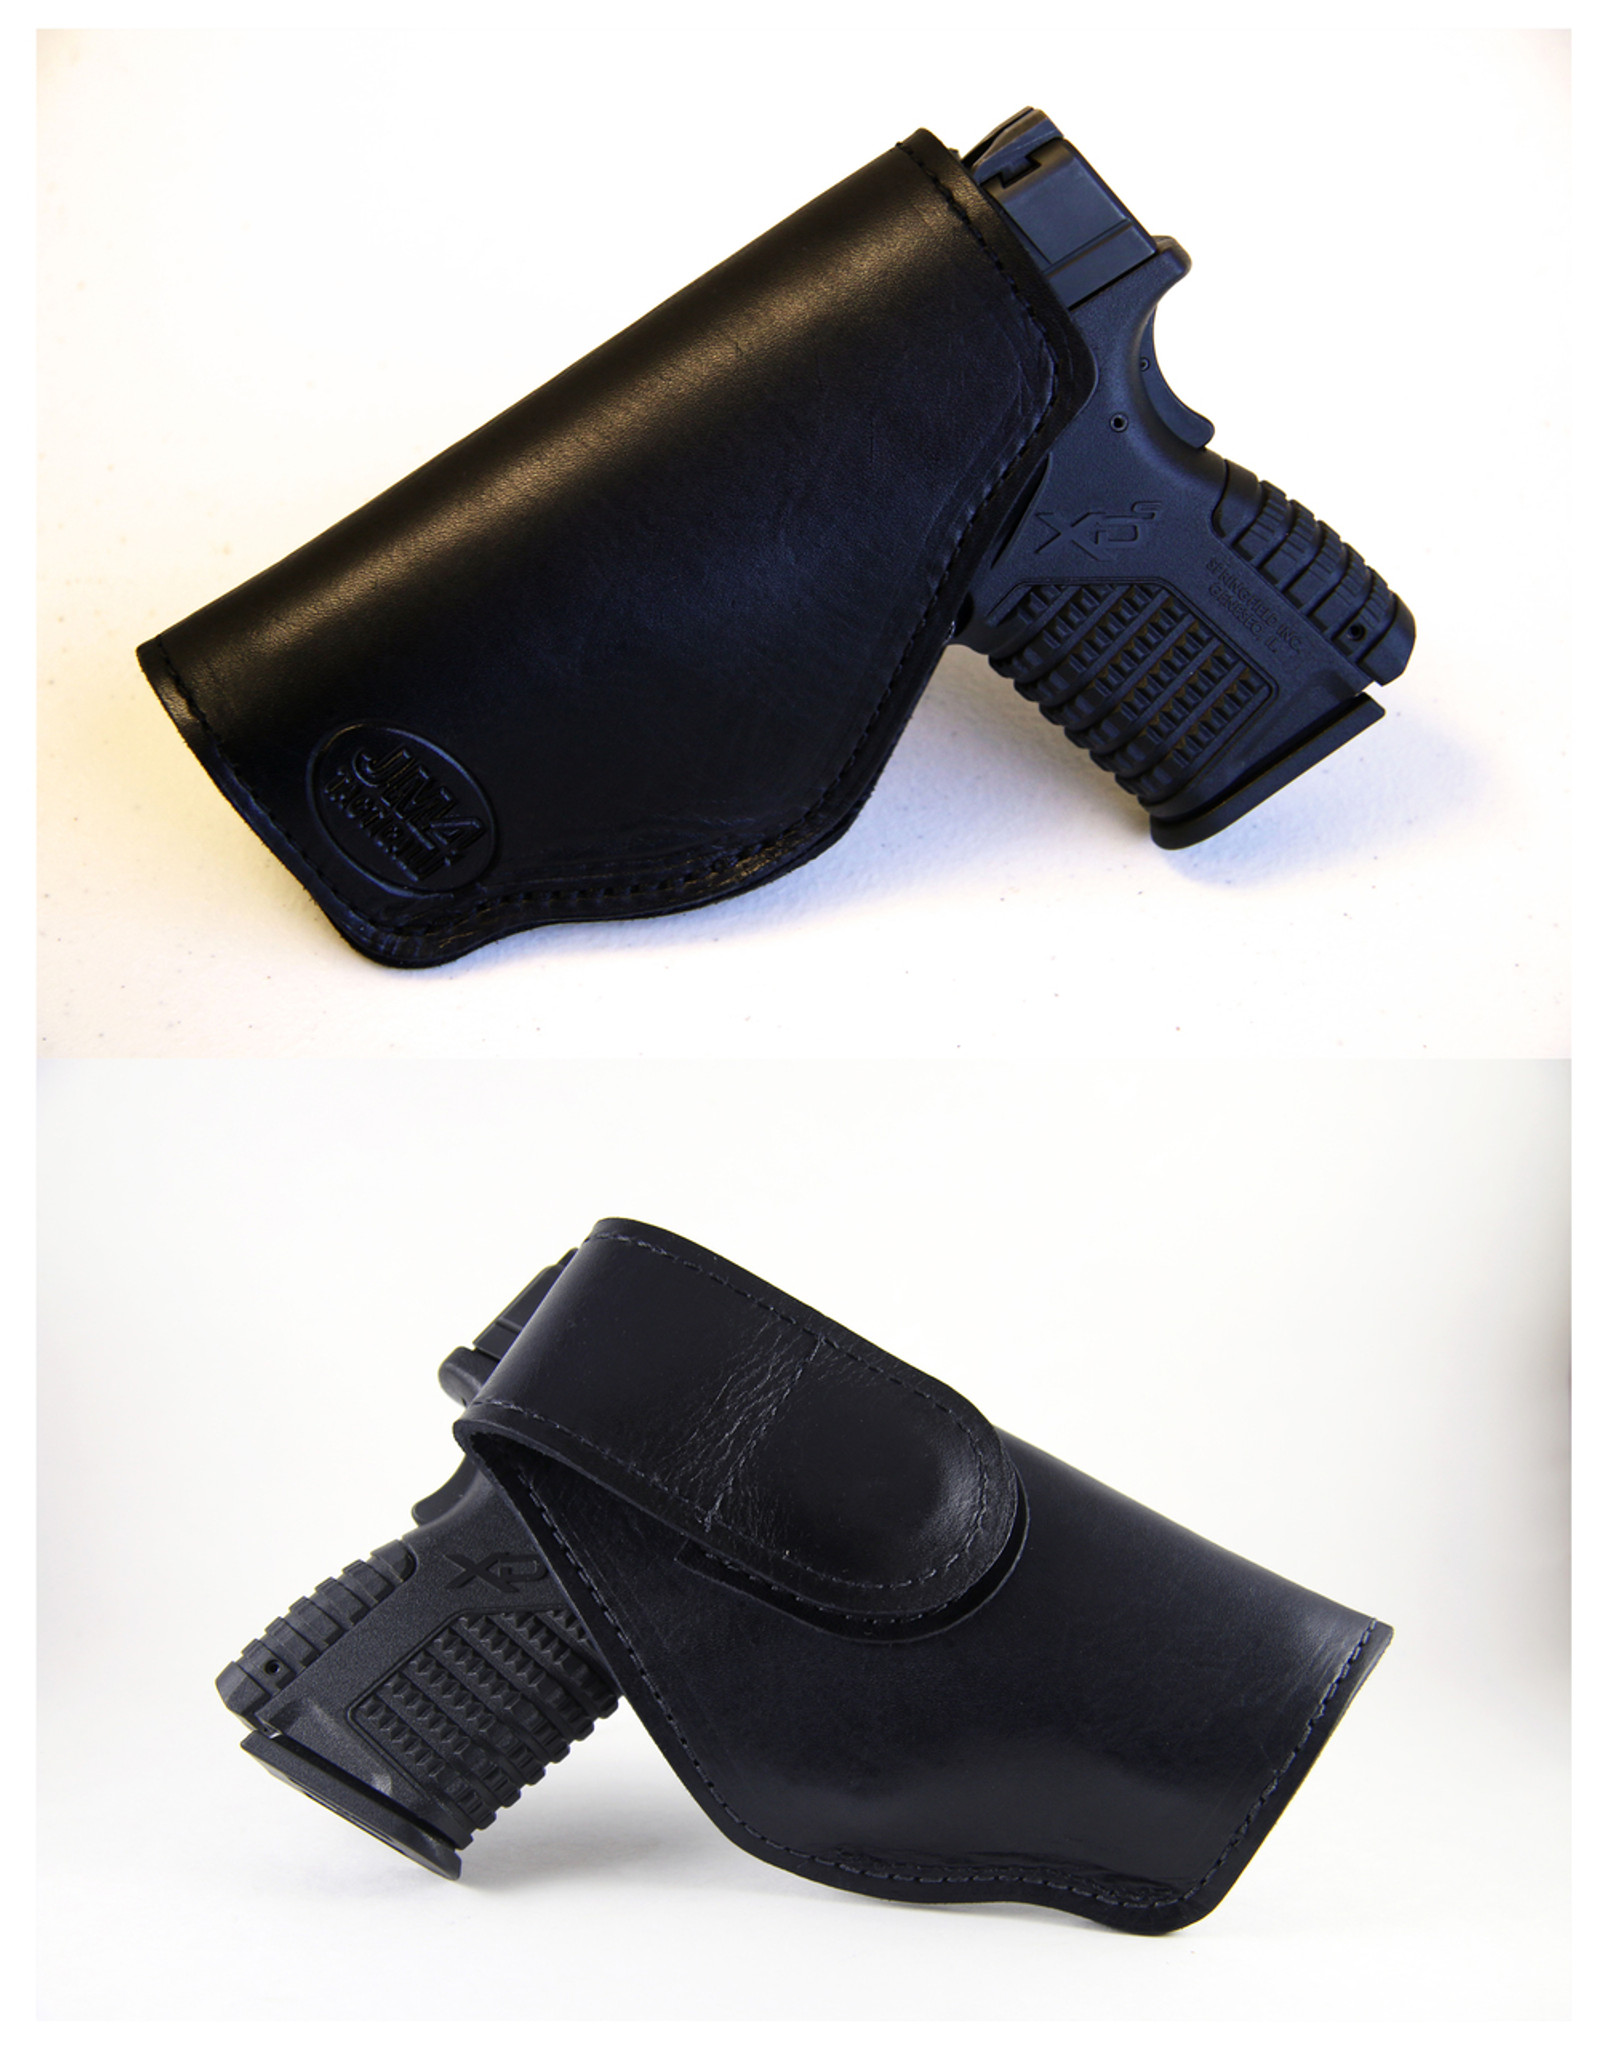 Large Original Magnetic Quick, Click, & Carry Holster - JM4 Tactical